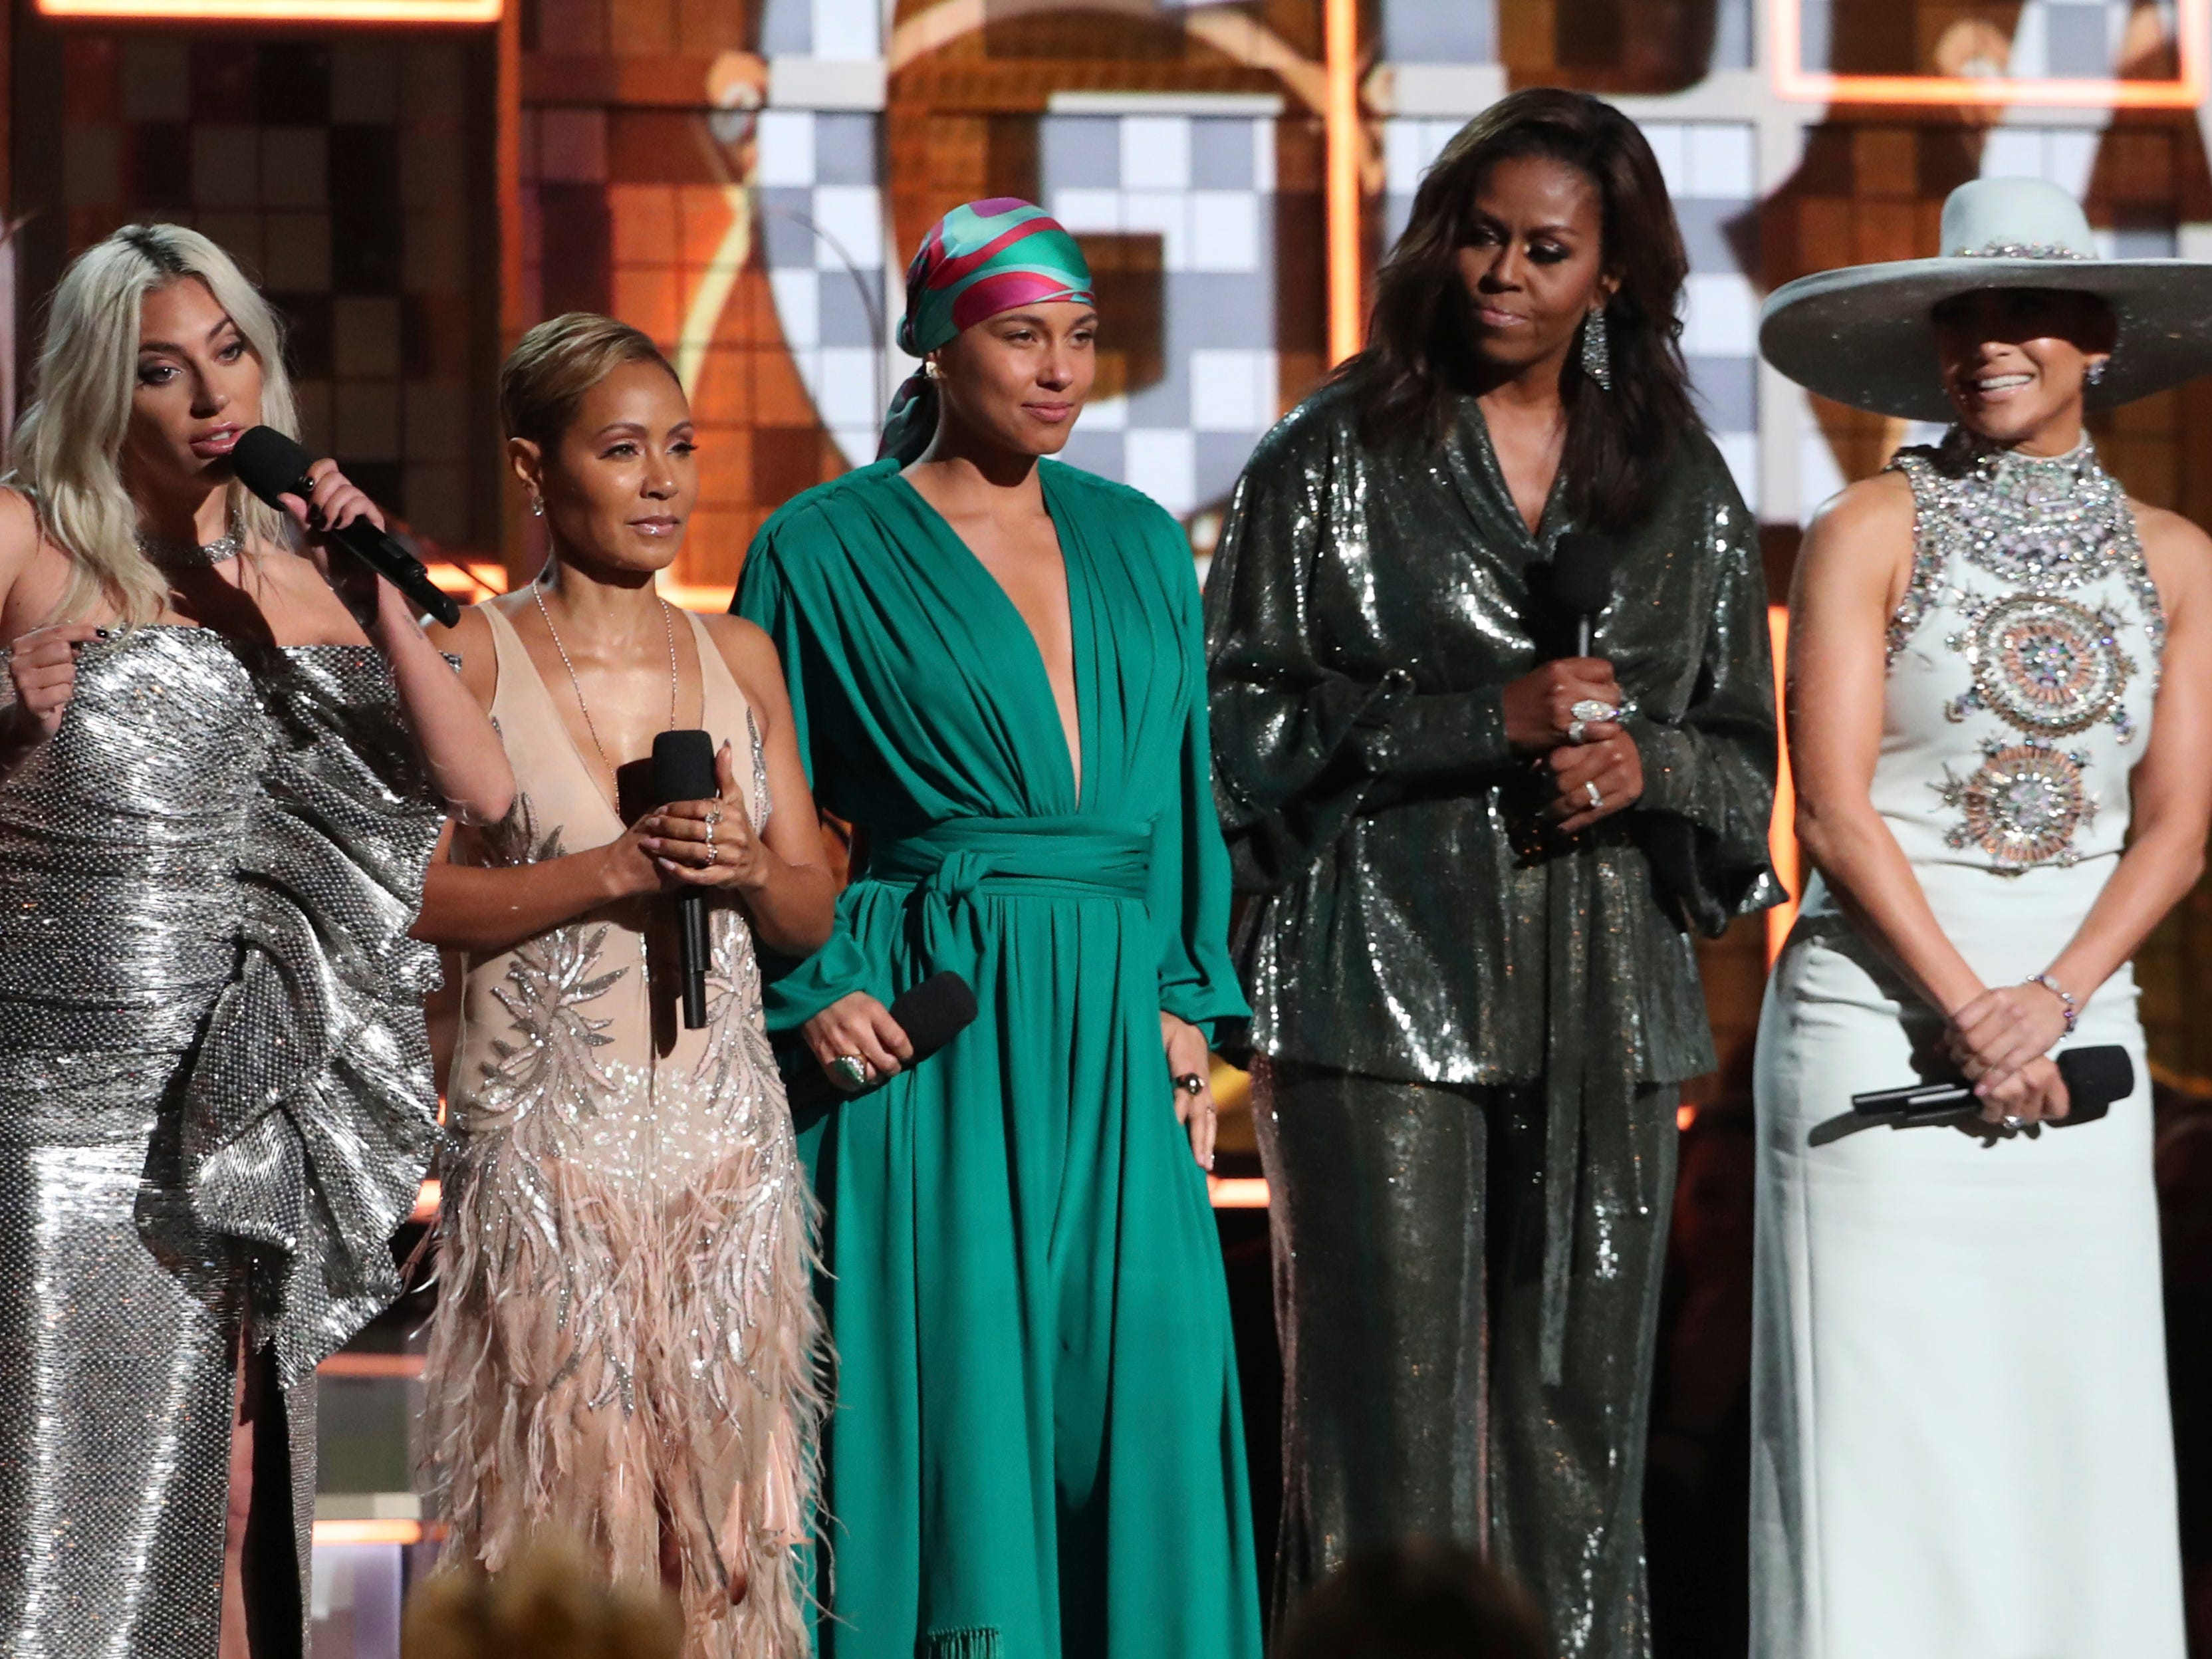 Lady Gaga, from left, Jada Pinkett Smith, Alicia Keys, Michelle Obama and Jennifer Lopez speak at the 61st annual Grammy Awards on Sunday, Feb. 10, 2019, in Los Angeles.